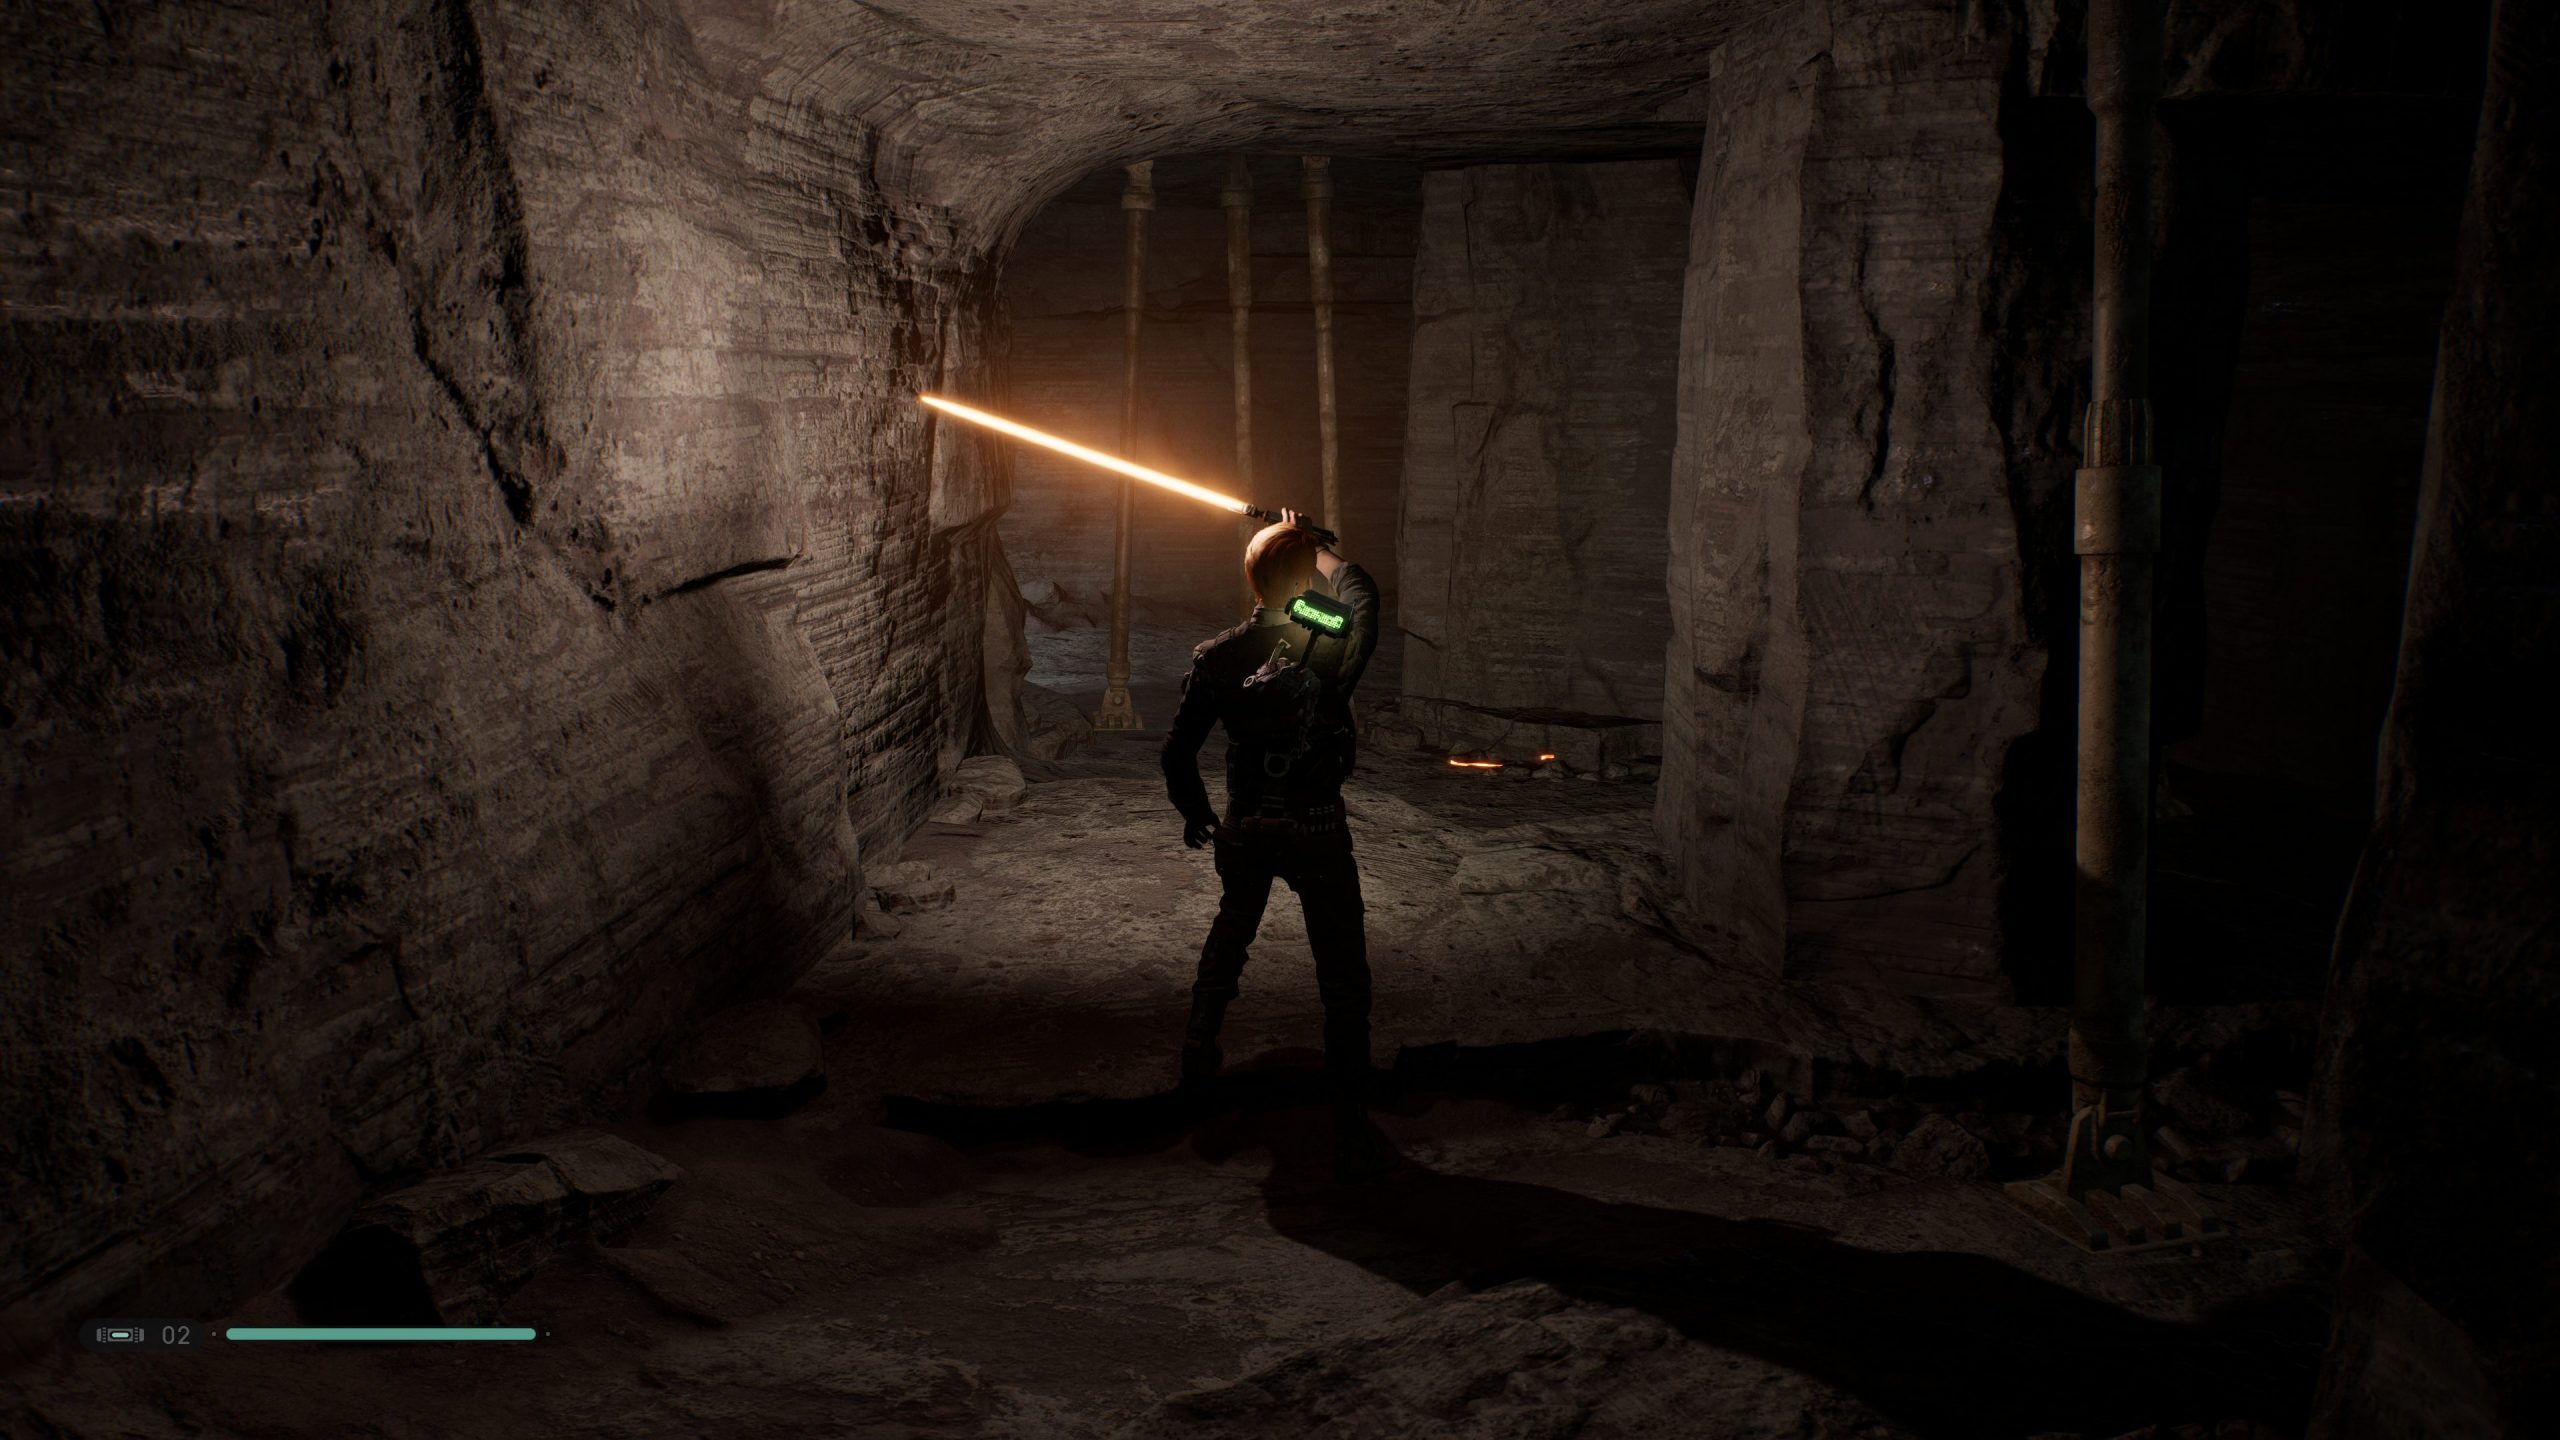 Cal using his lightsaber to light up a dark passage